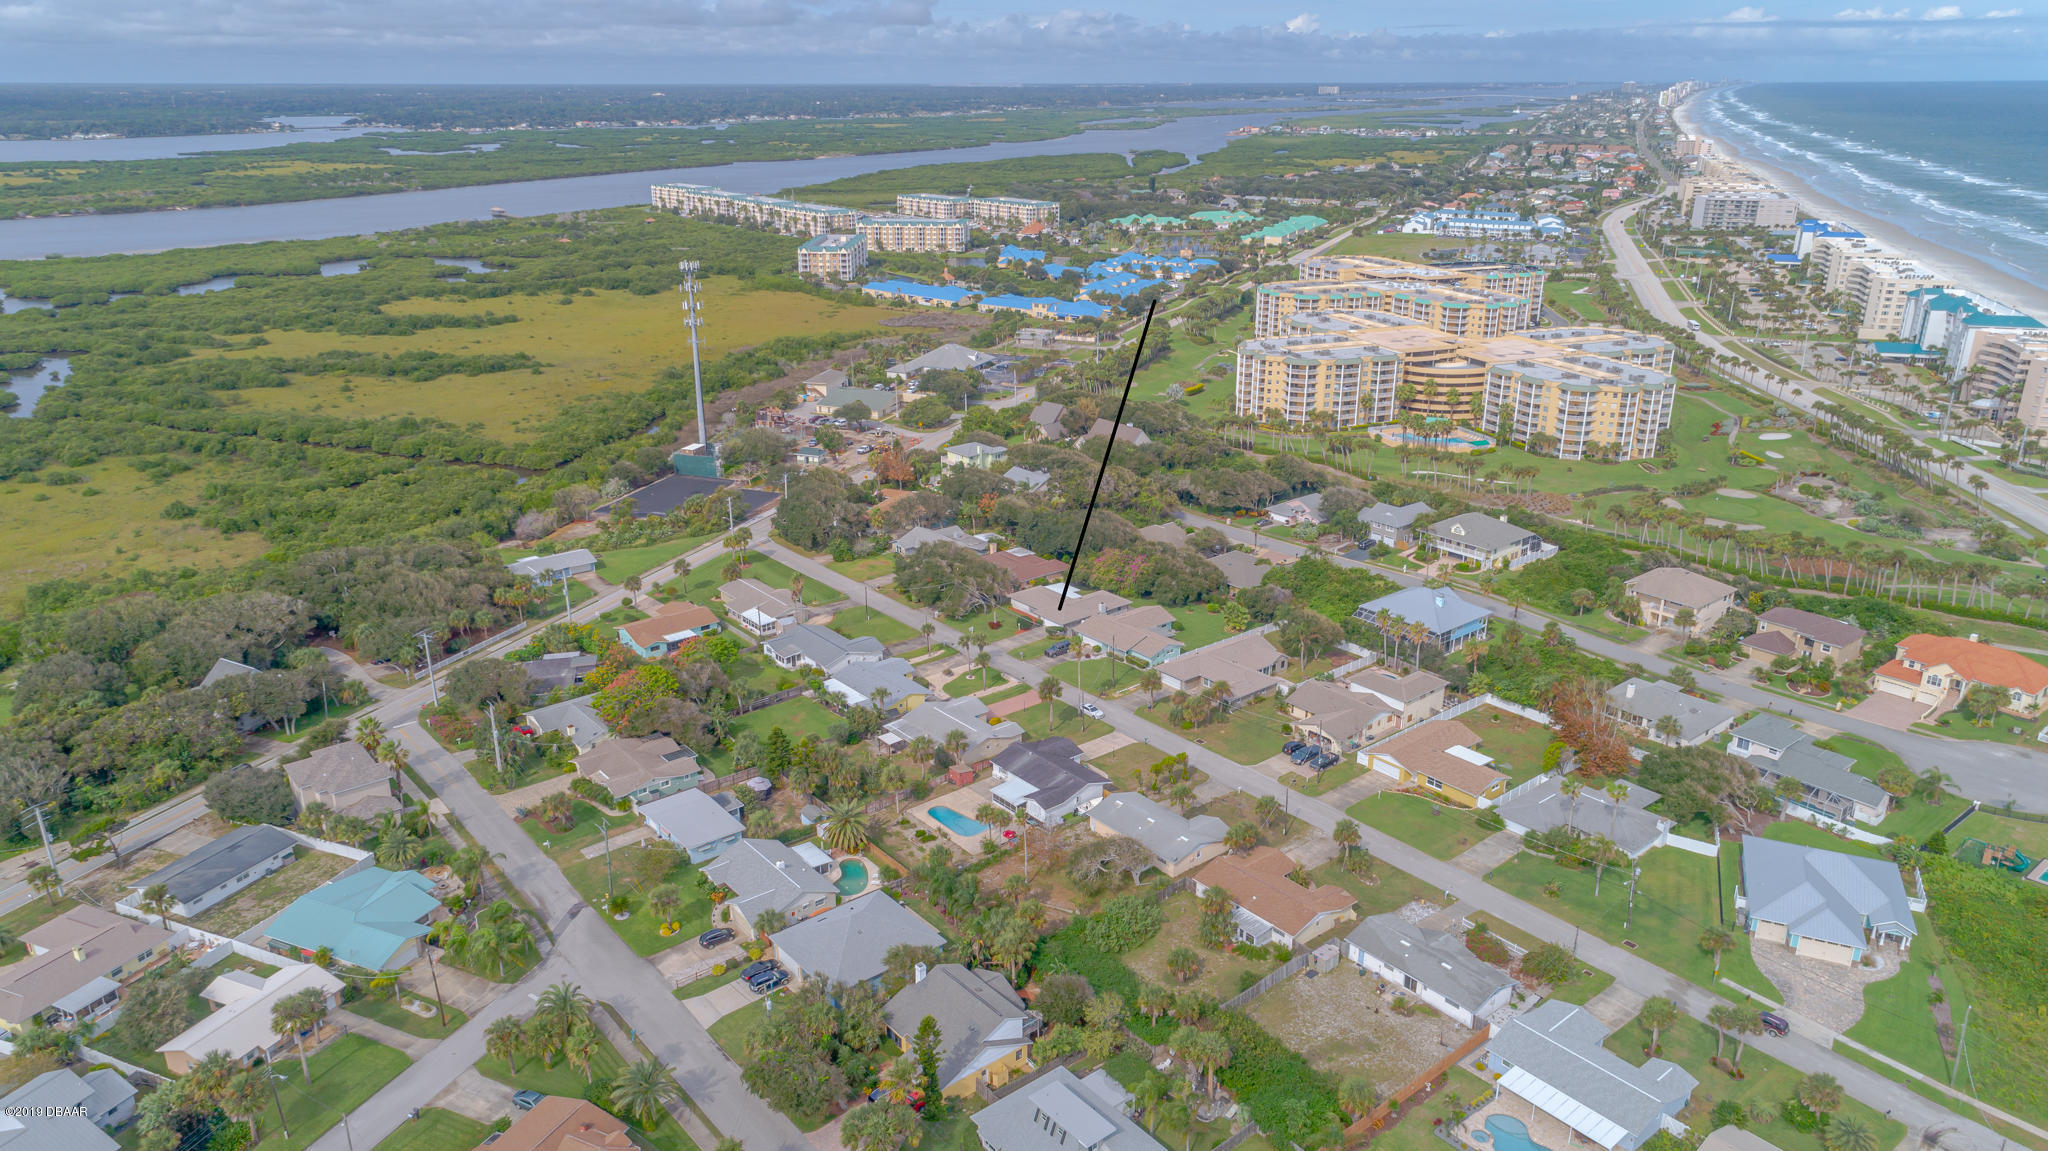 80 Cindy Ponce Inlet - 41